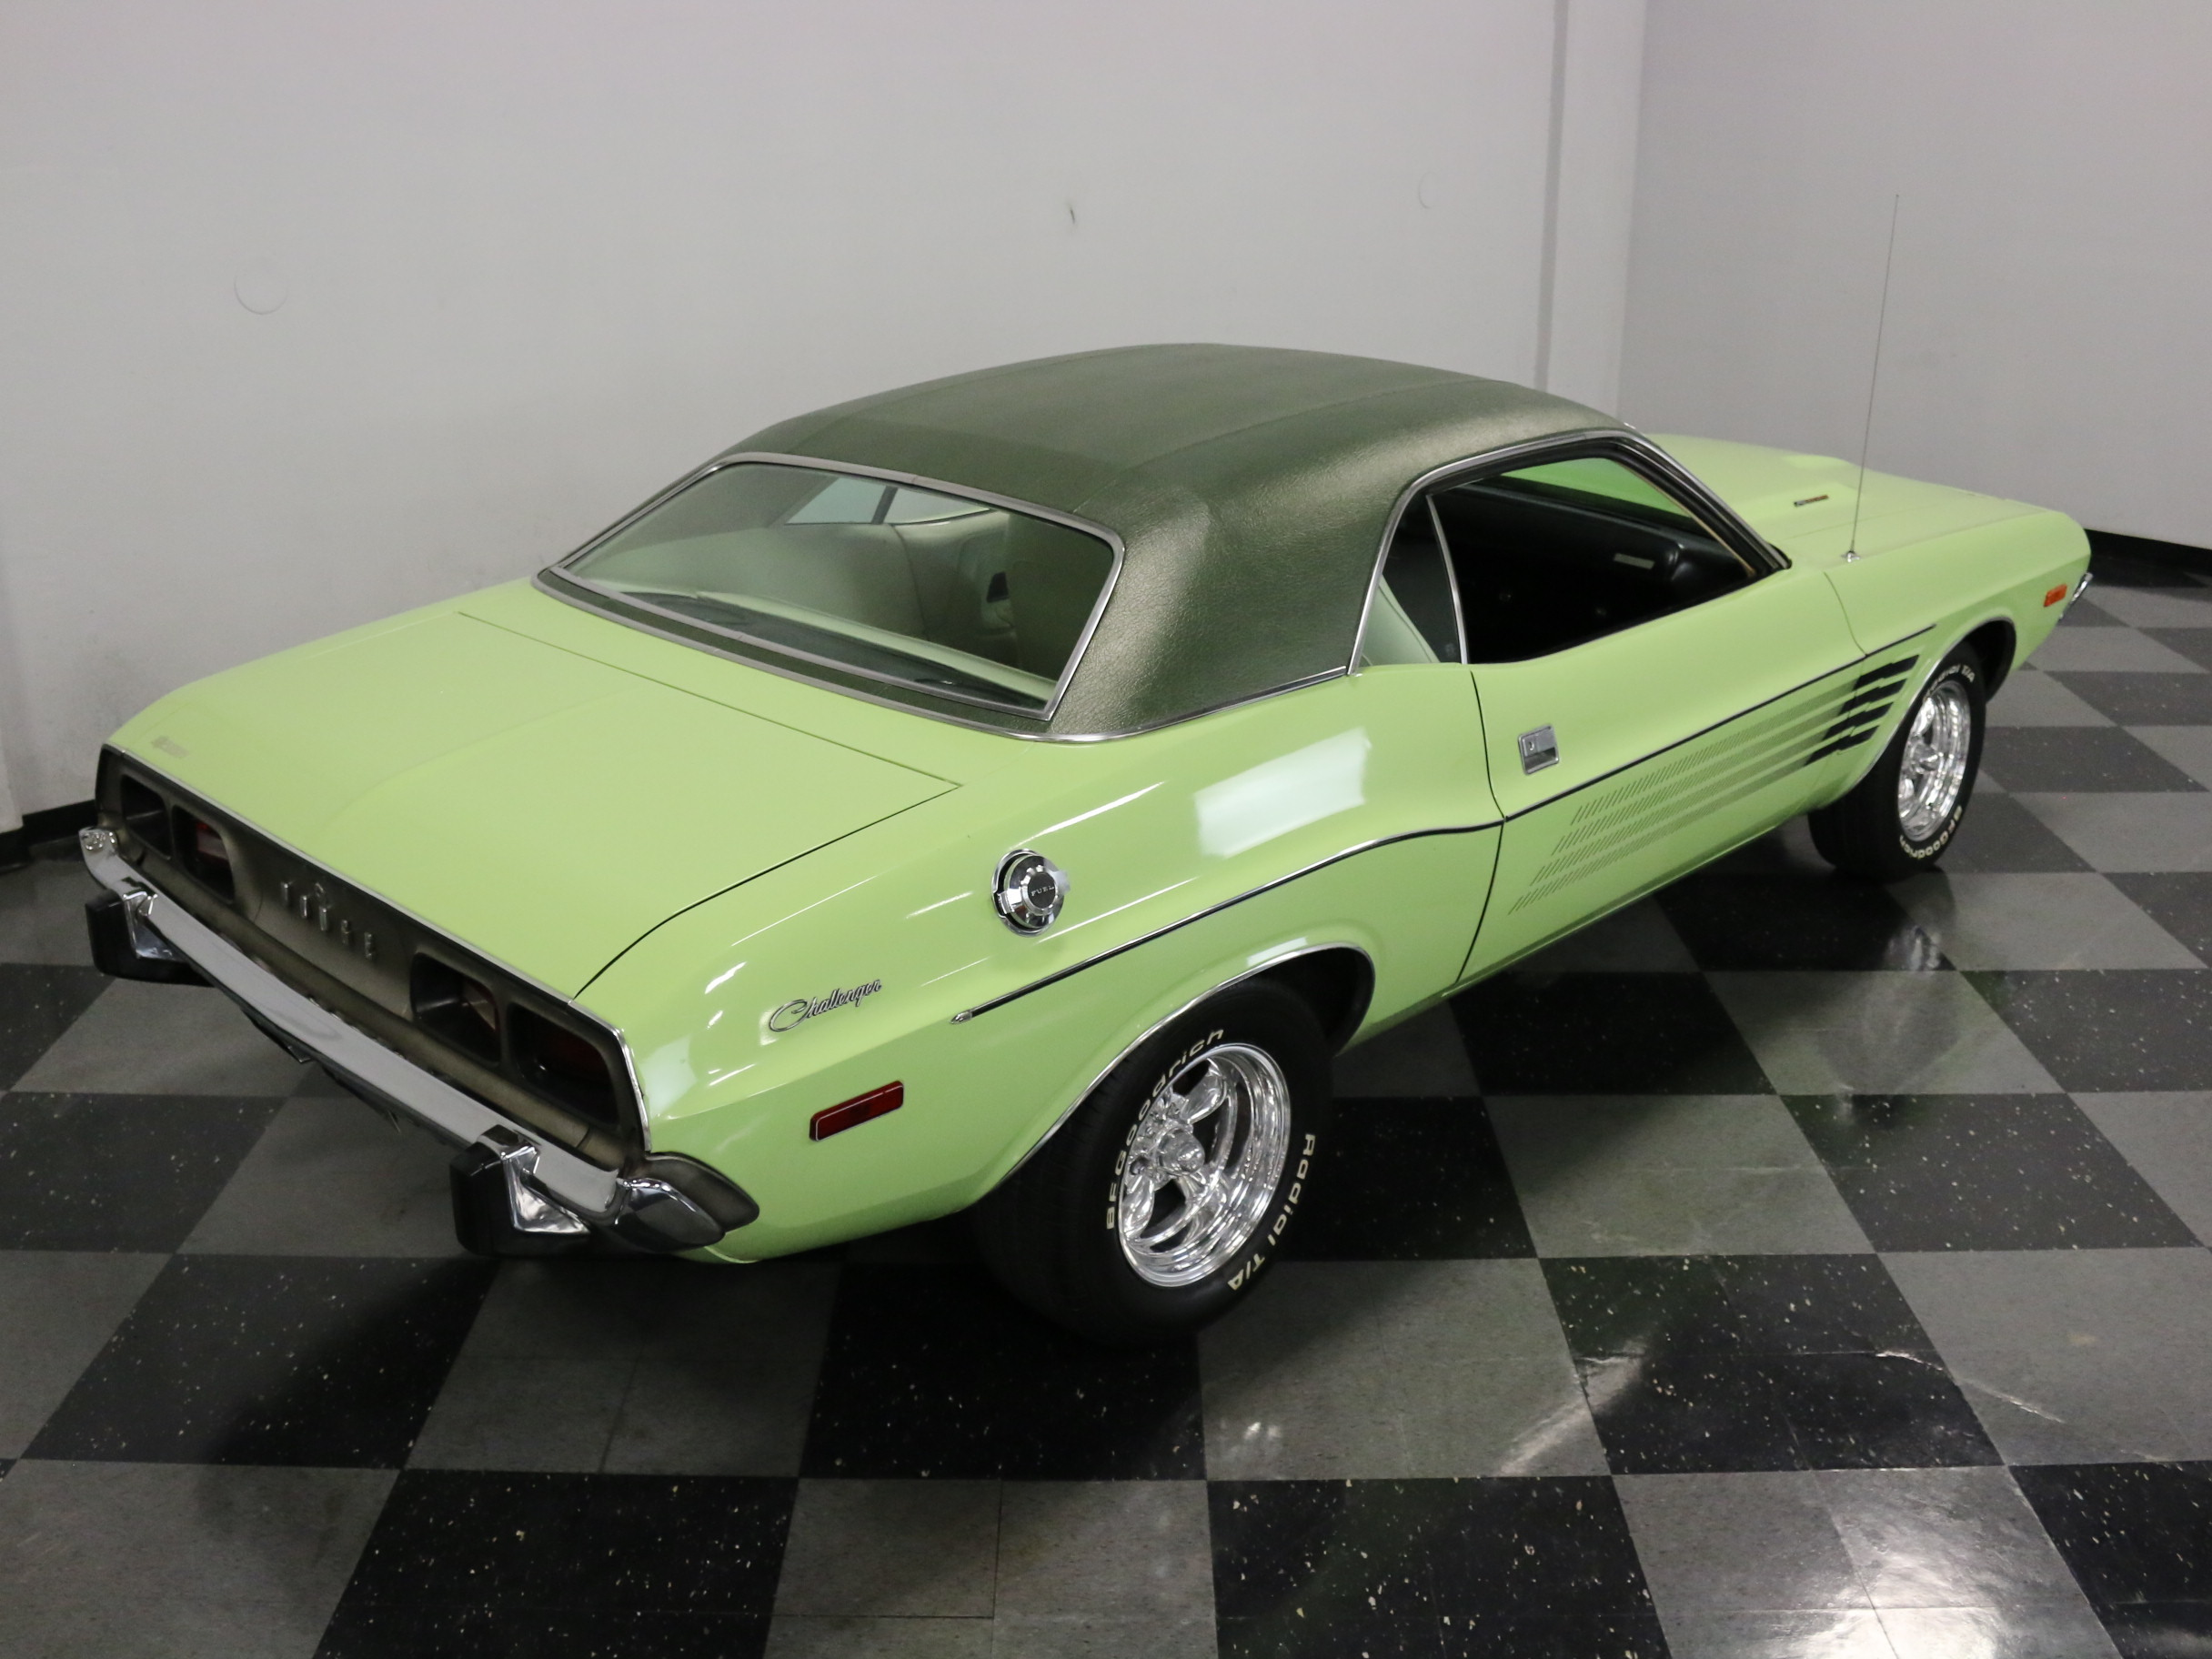 1973 Dodge Challenger Rallye: VERY CLEAN ORIGINAL, BELIEVED 59K ACTUAL MILES, #'S MATCH 340, 4 SPD, BUILDSHEET